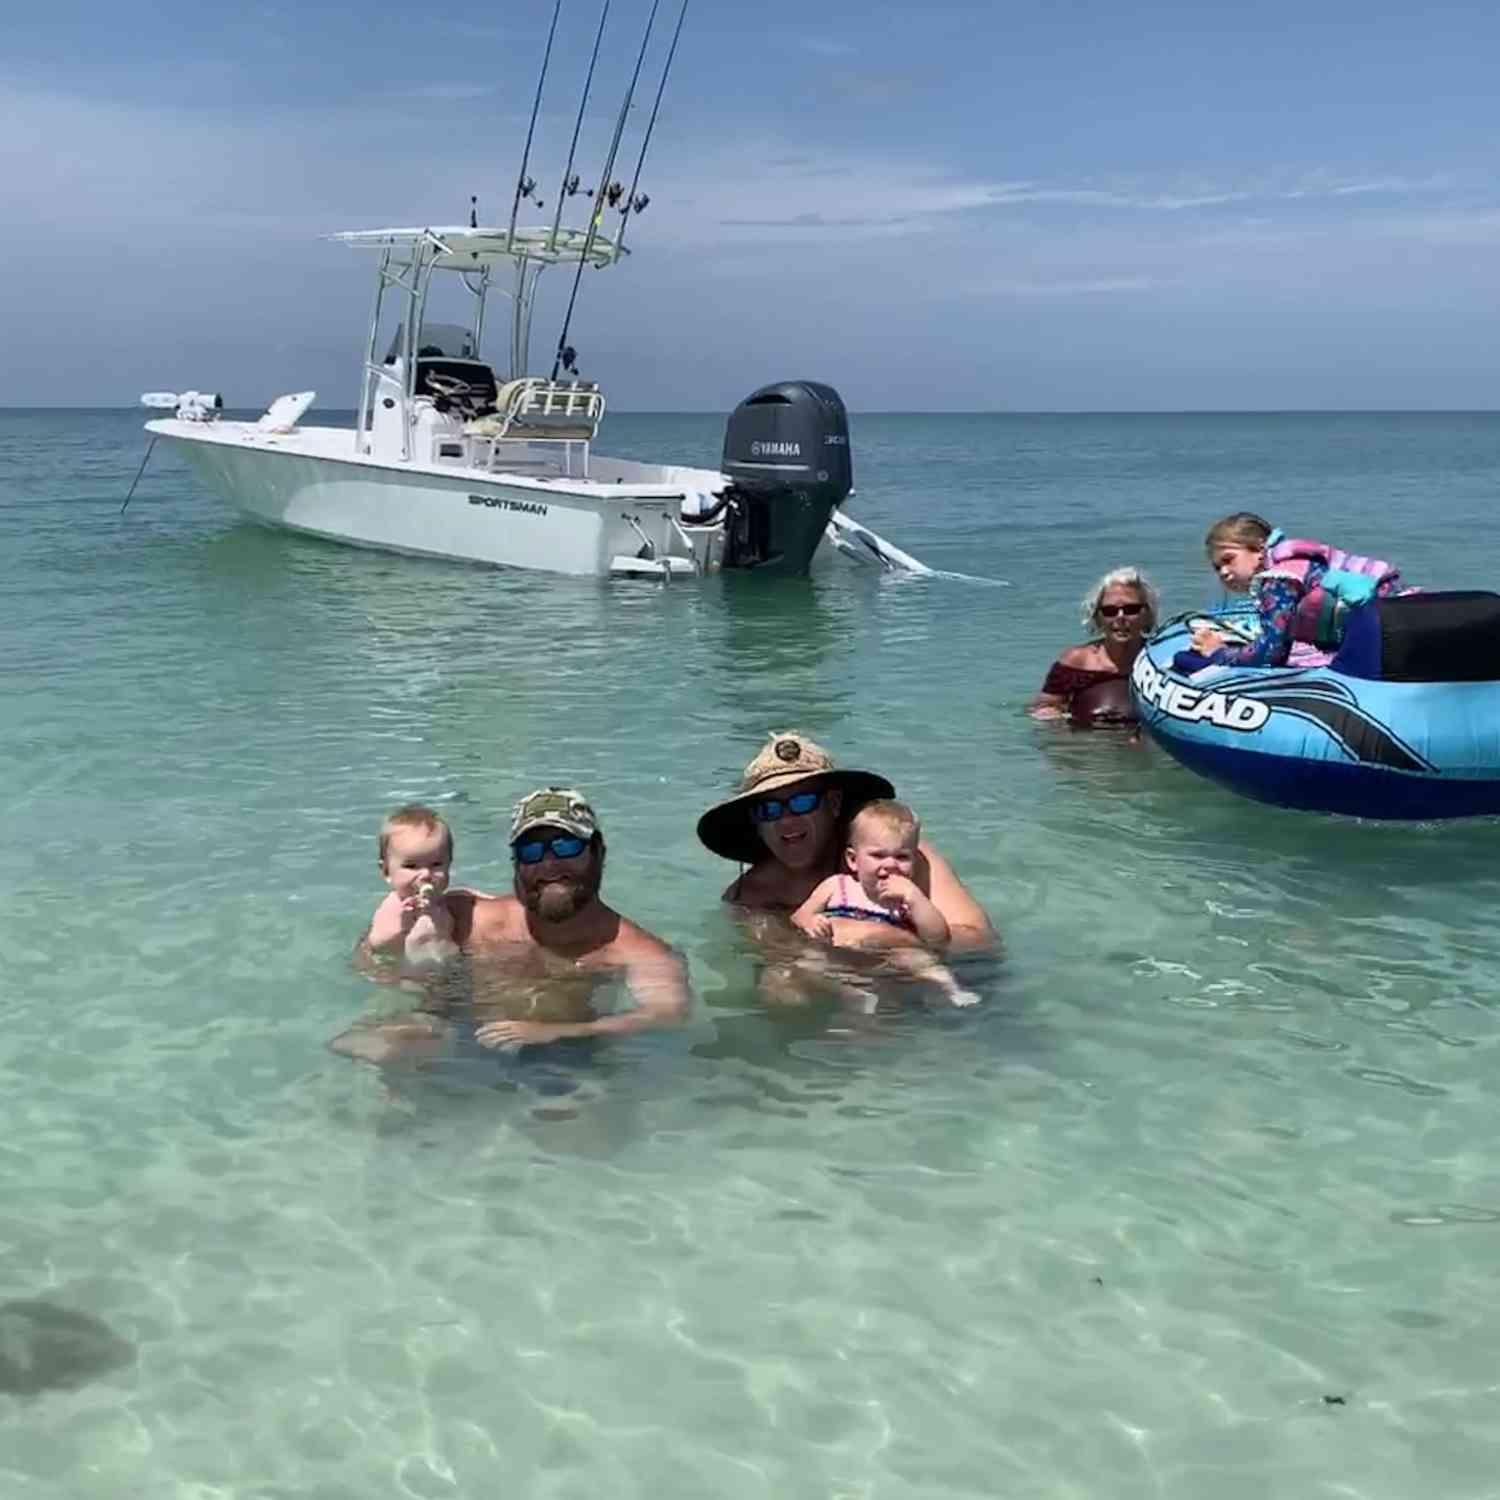 Title: Cooling off - On board their Sportsman Masters 247 Bay Boat - Location: Casey key FL. Participating in the Photo Contest #SportsmanJuly2019